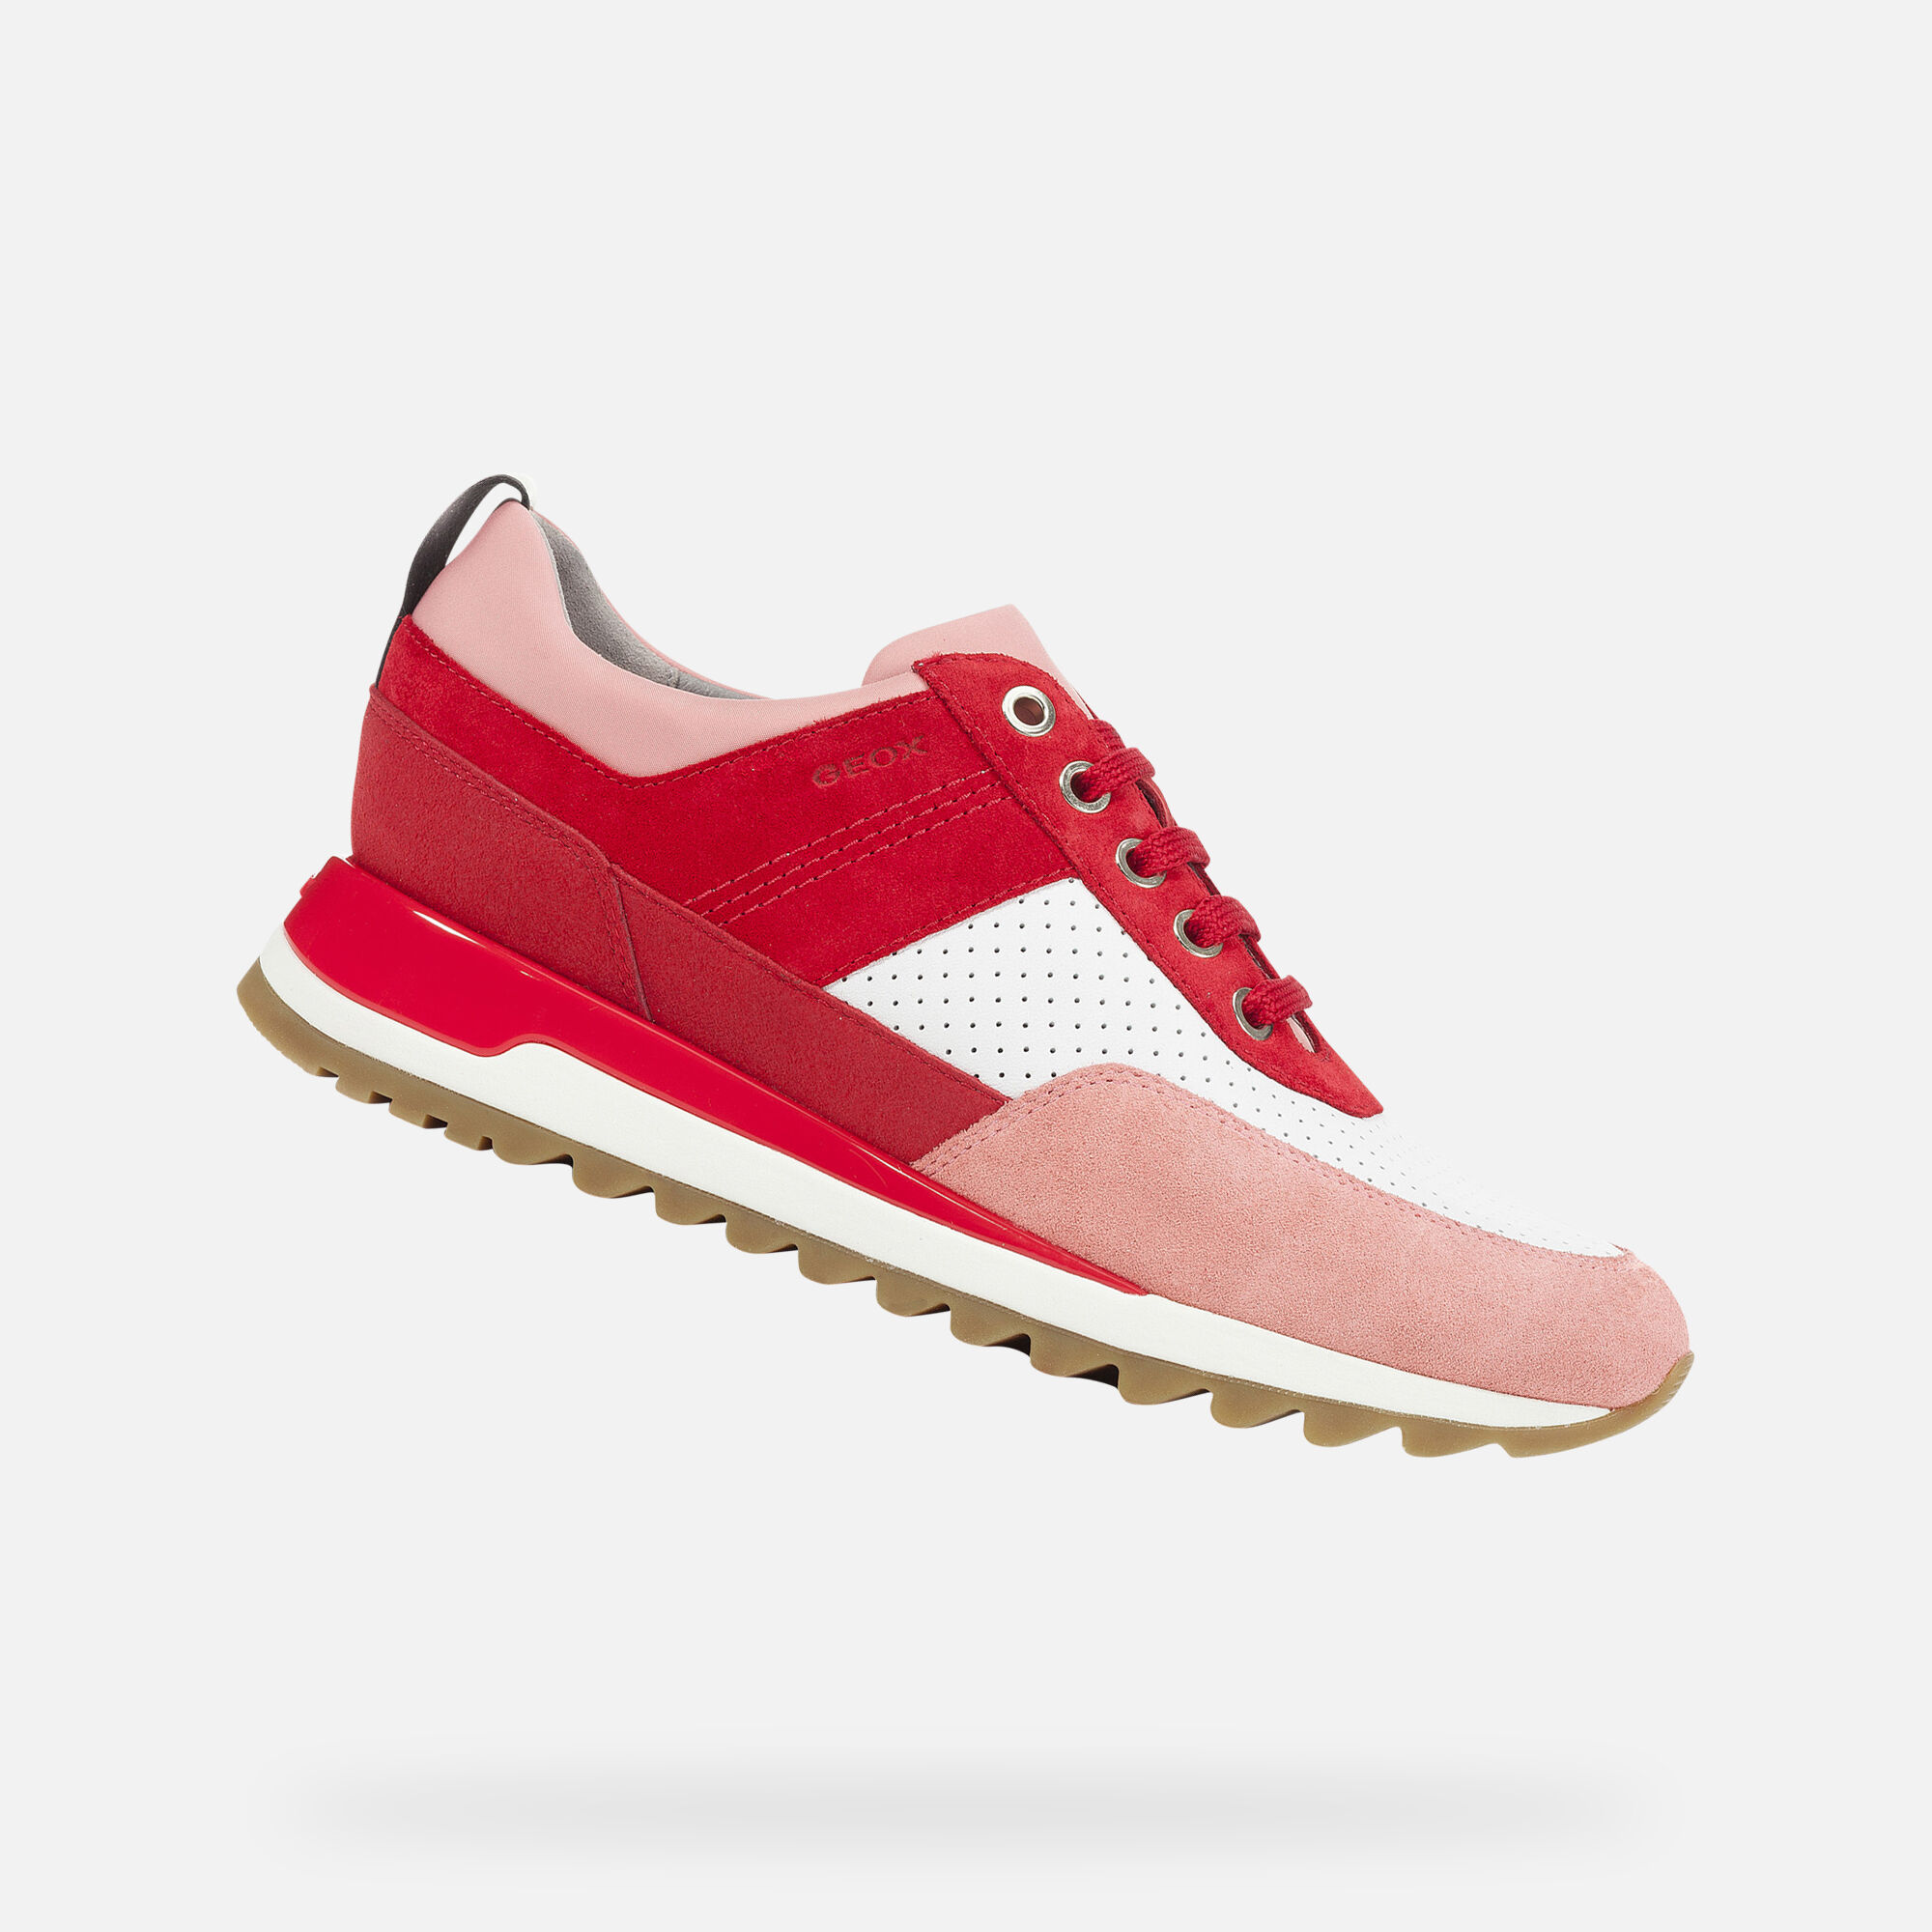 Geox D TABELYA: Red and White Woman Sneakers | Geox SS19